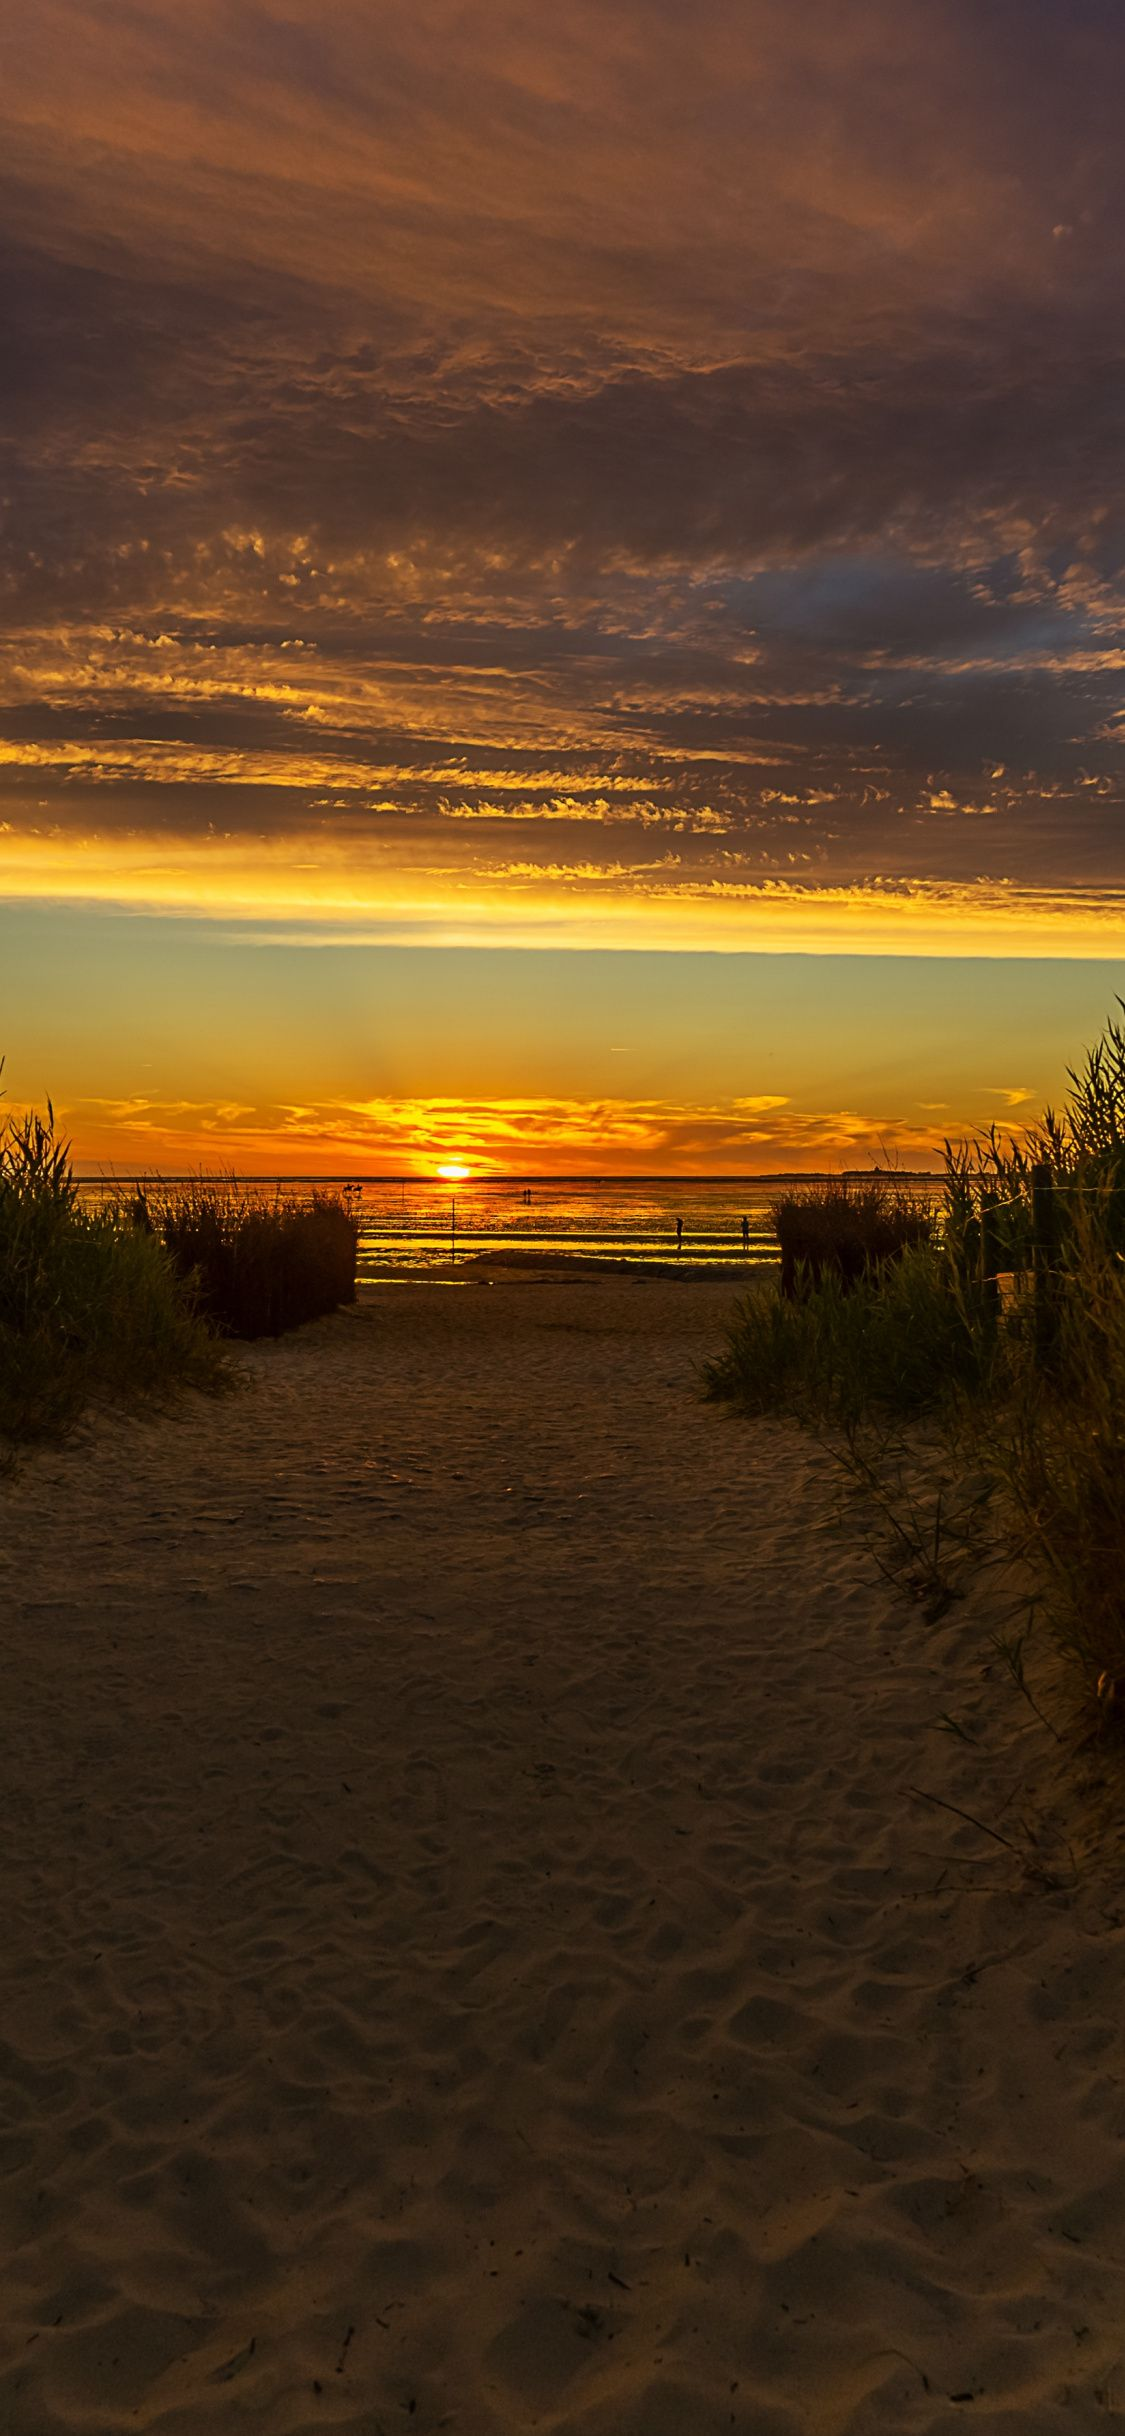 Nature Sunset Beach Grass Pathway Wallpaper Landscape Prints Nature Photography Types Of Photography Hd wallpaper nature reeds grass sunset